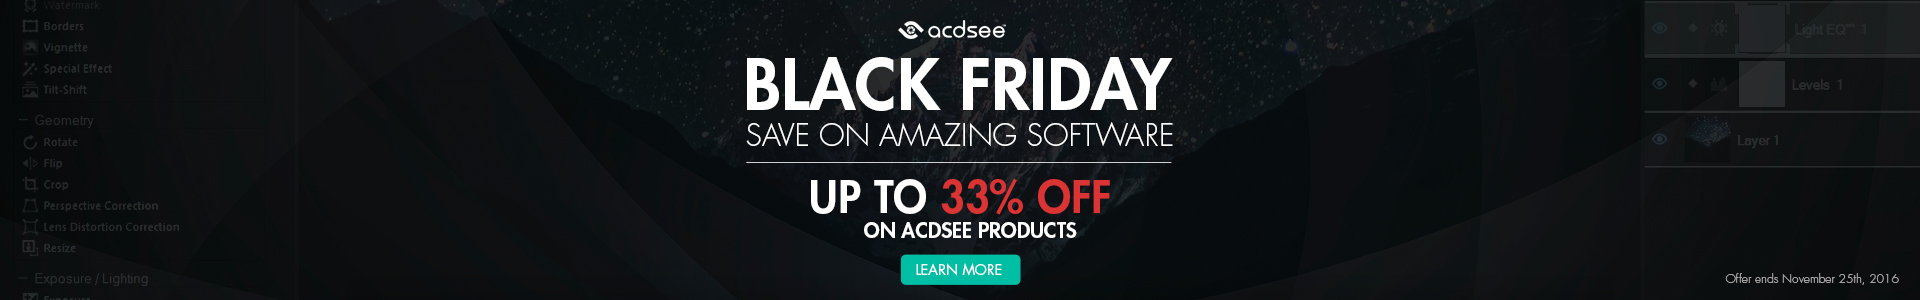 acdsee free  full version for windows 7